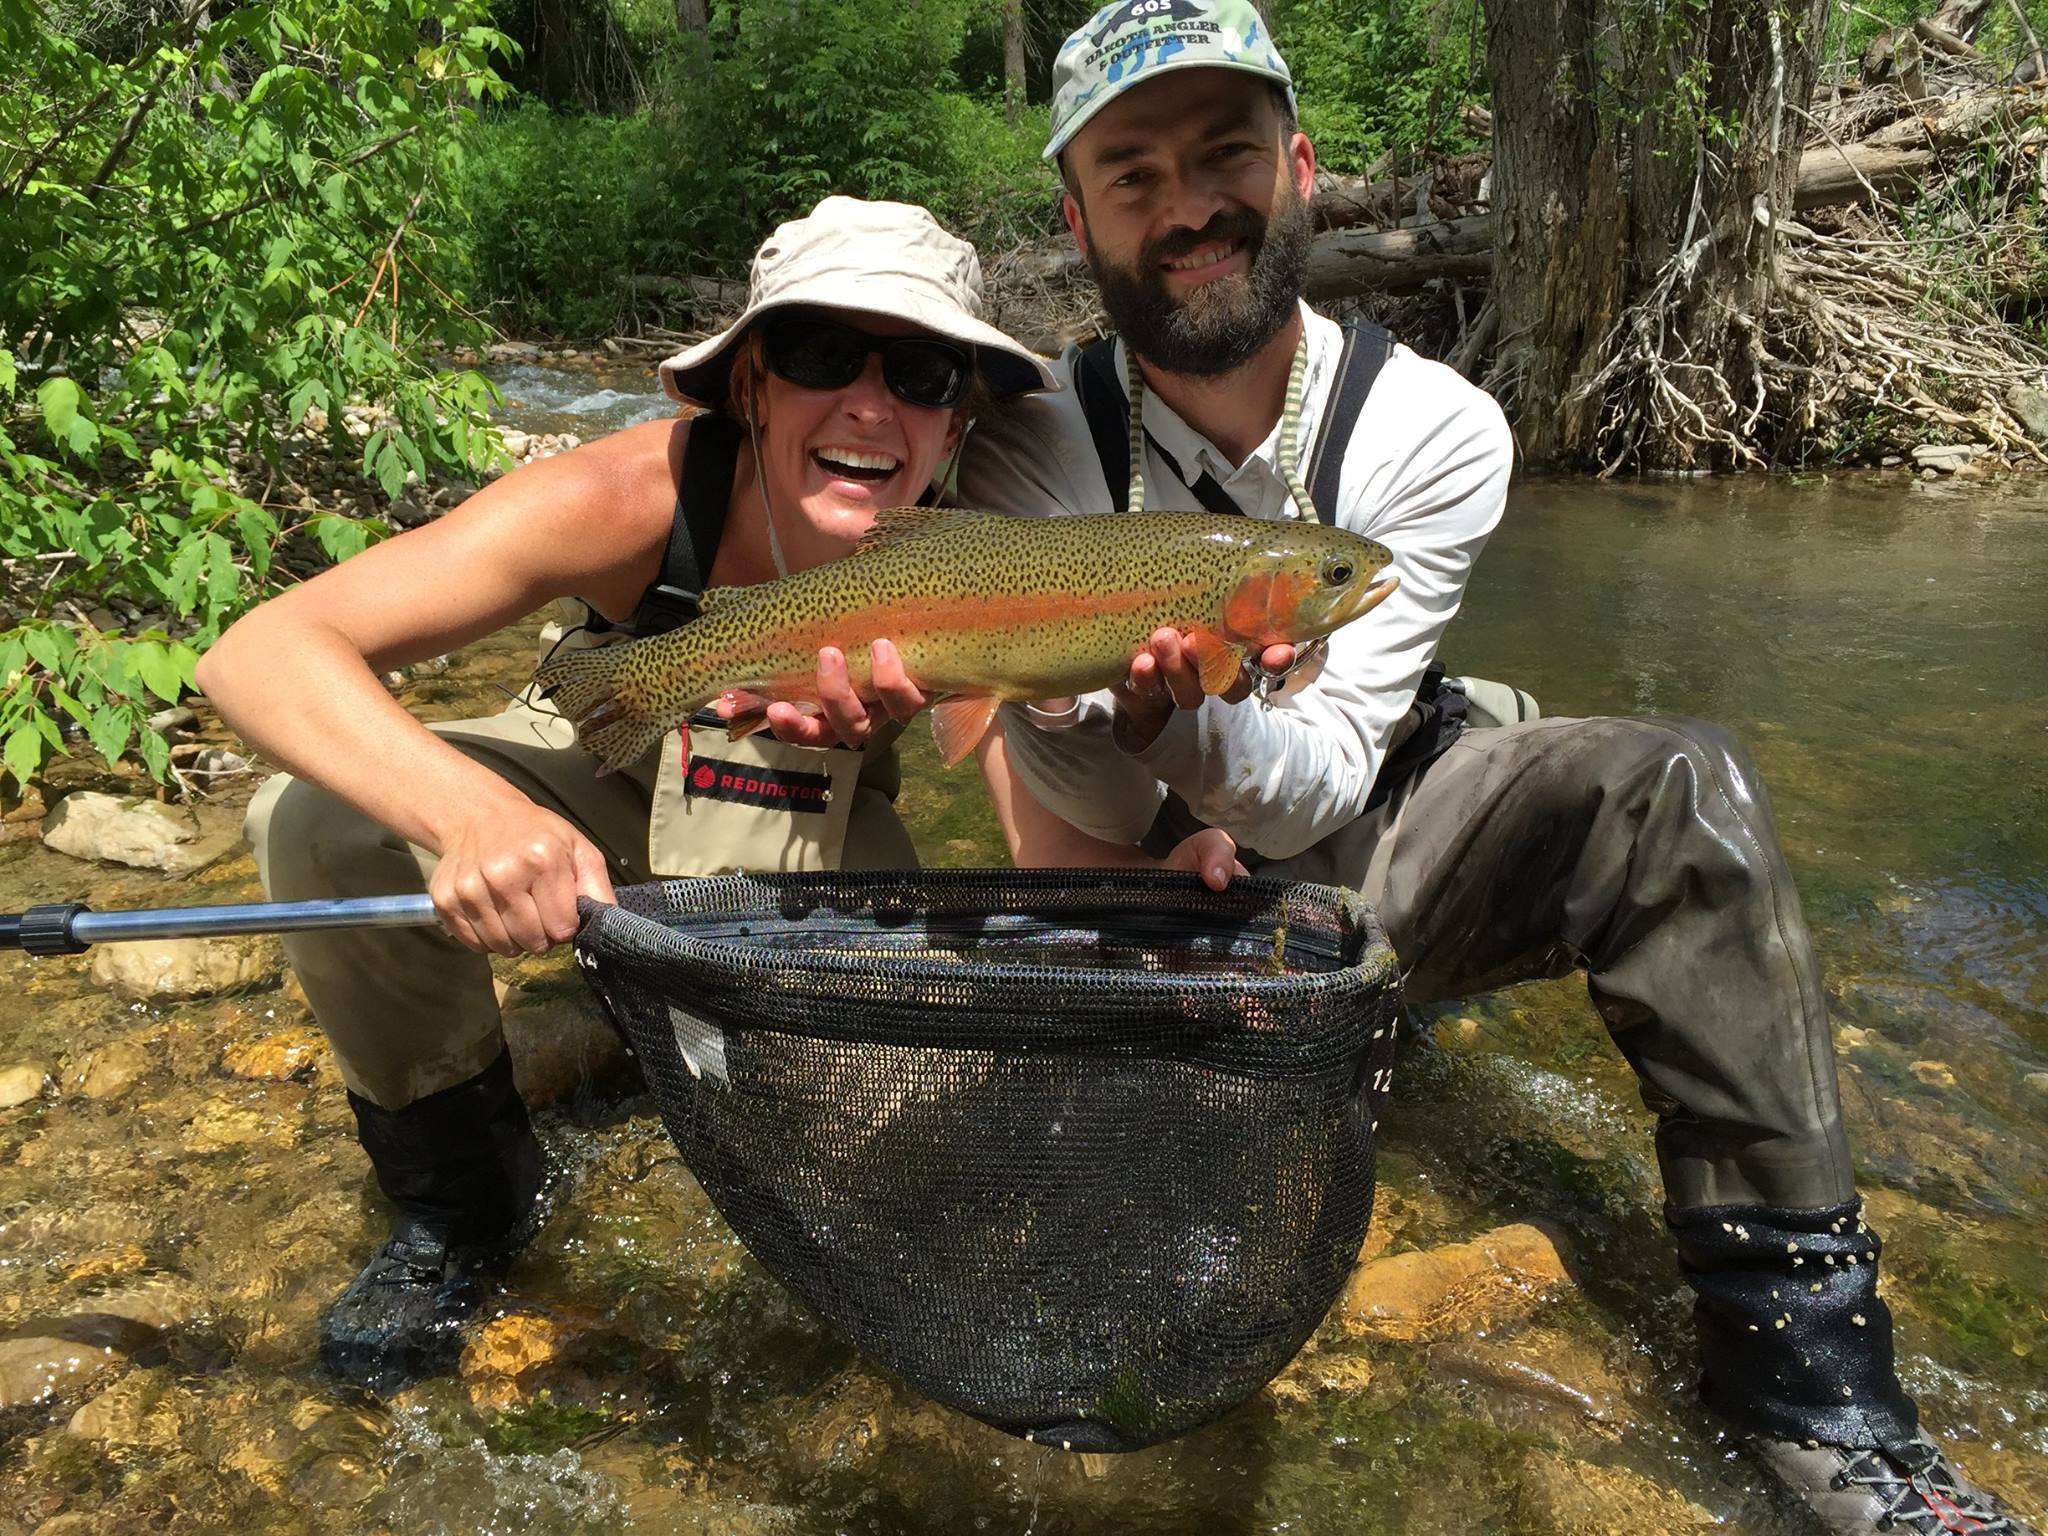 Black hills fishing report july 16 2015 dakota angler for Dakota angler fishing reports